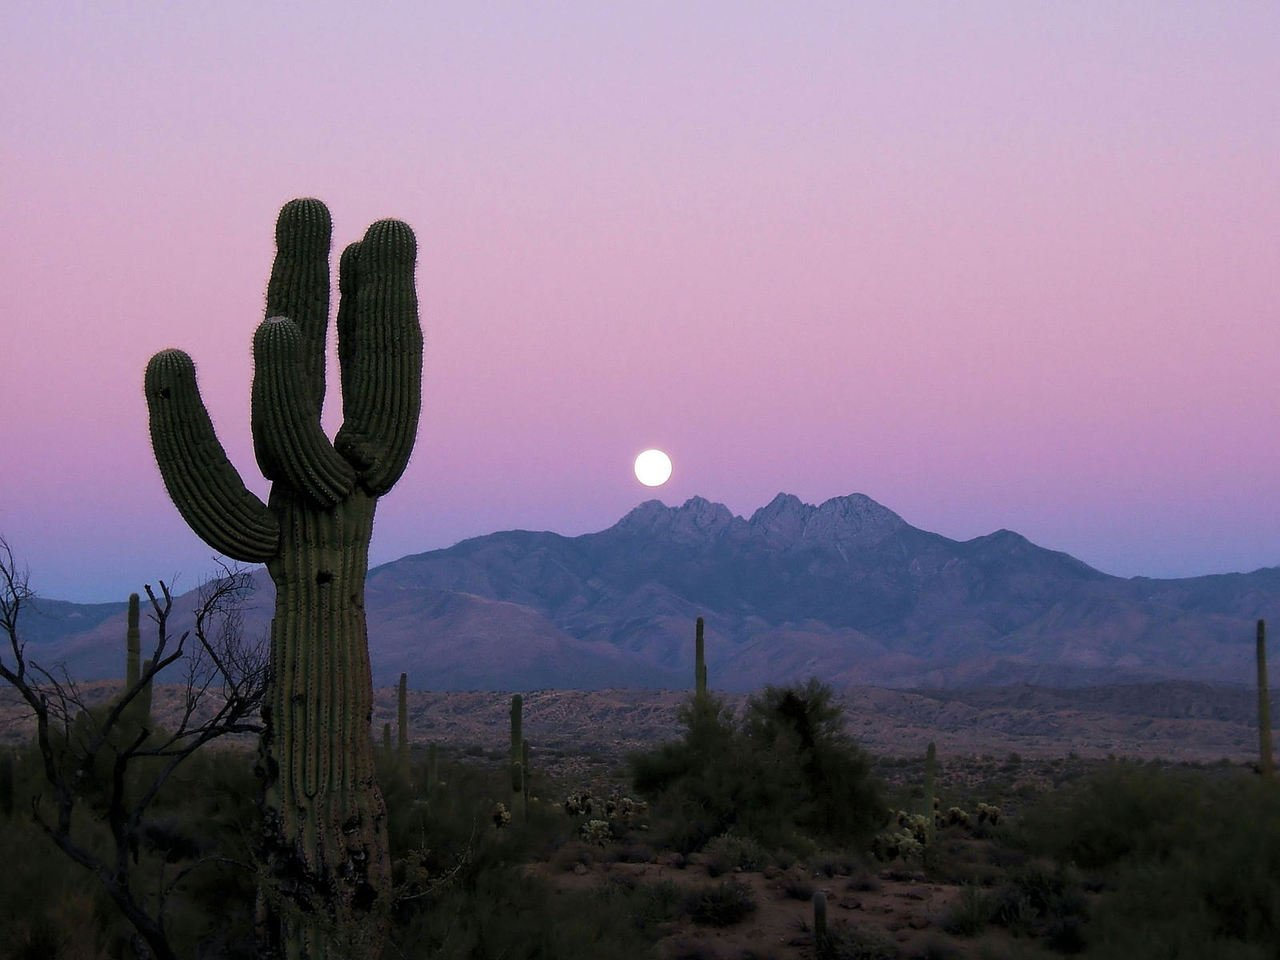 The Full Moon rises in the desert